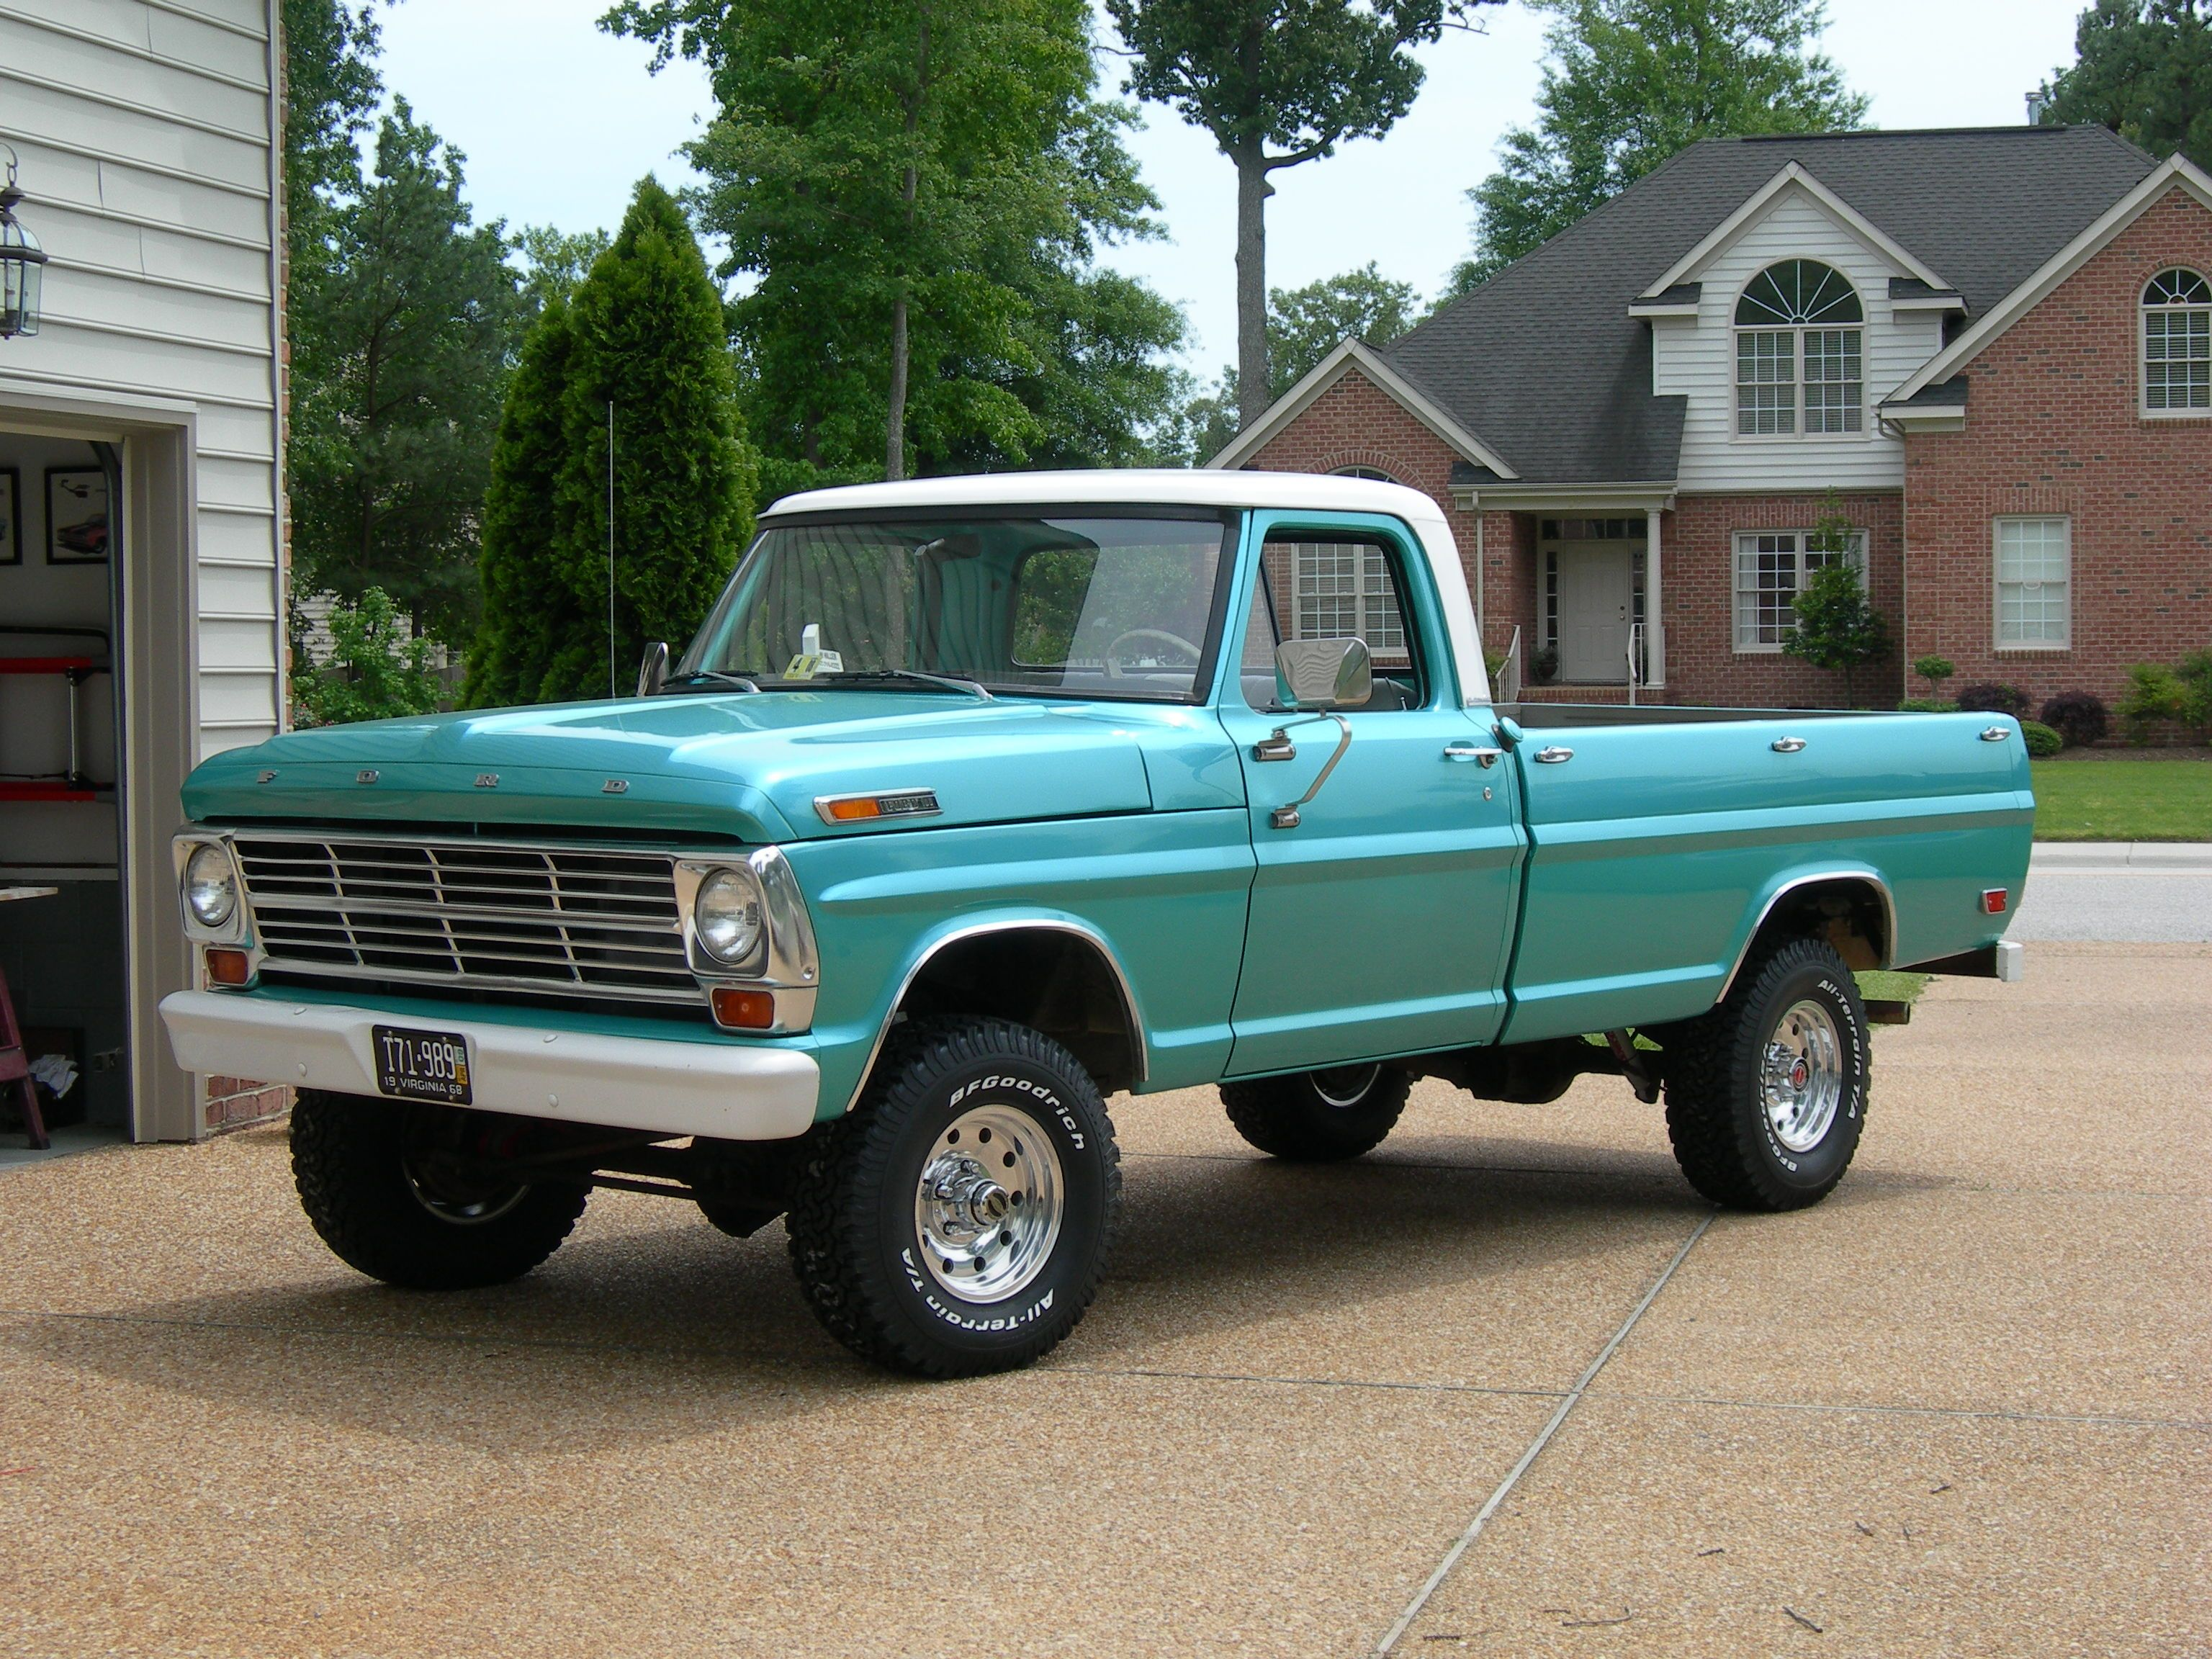 68 ford 4x4 f100 ours was a 3 4 ton f250